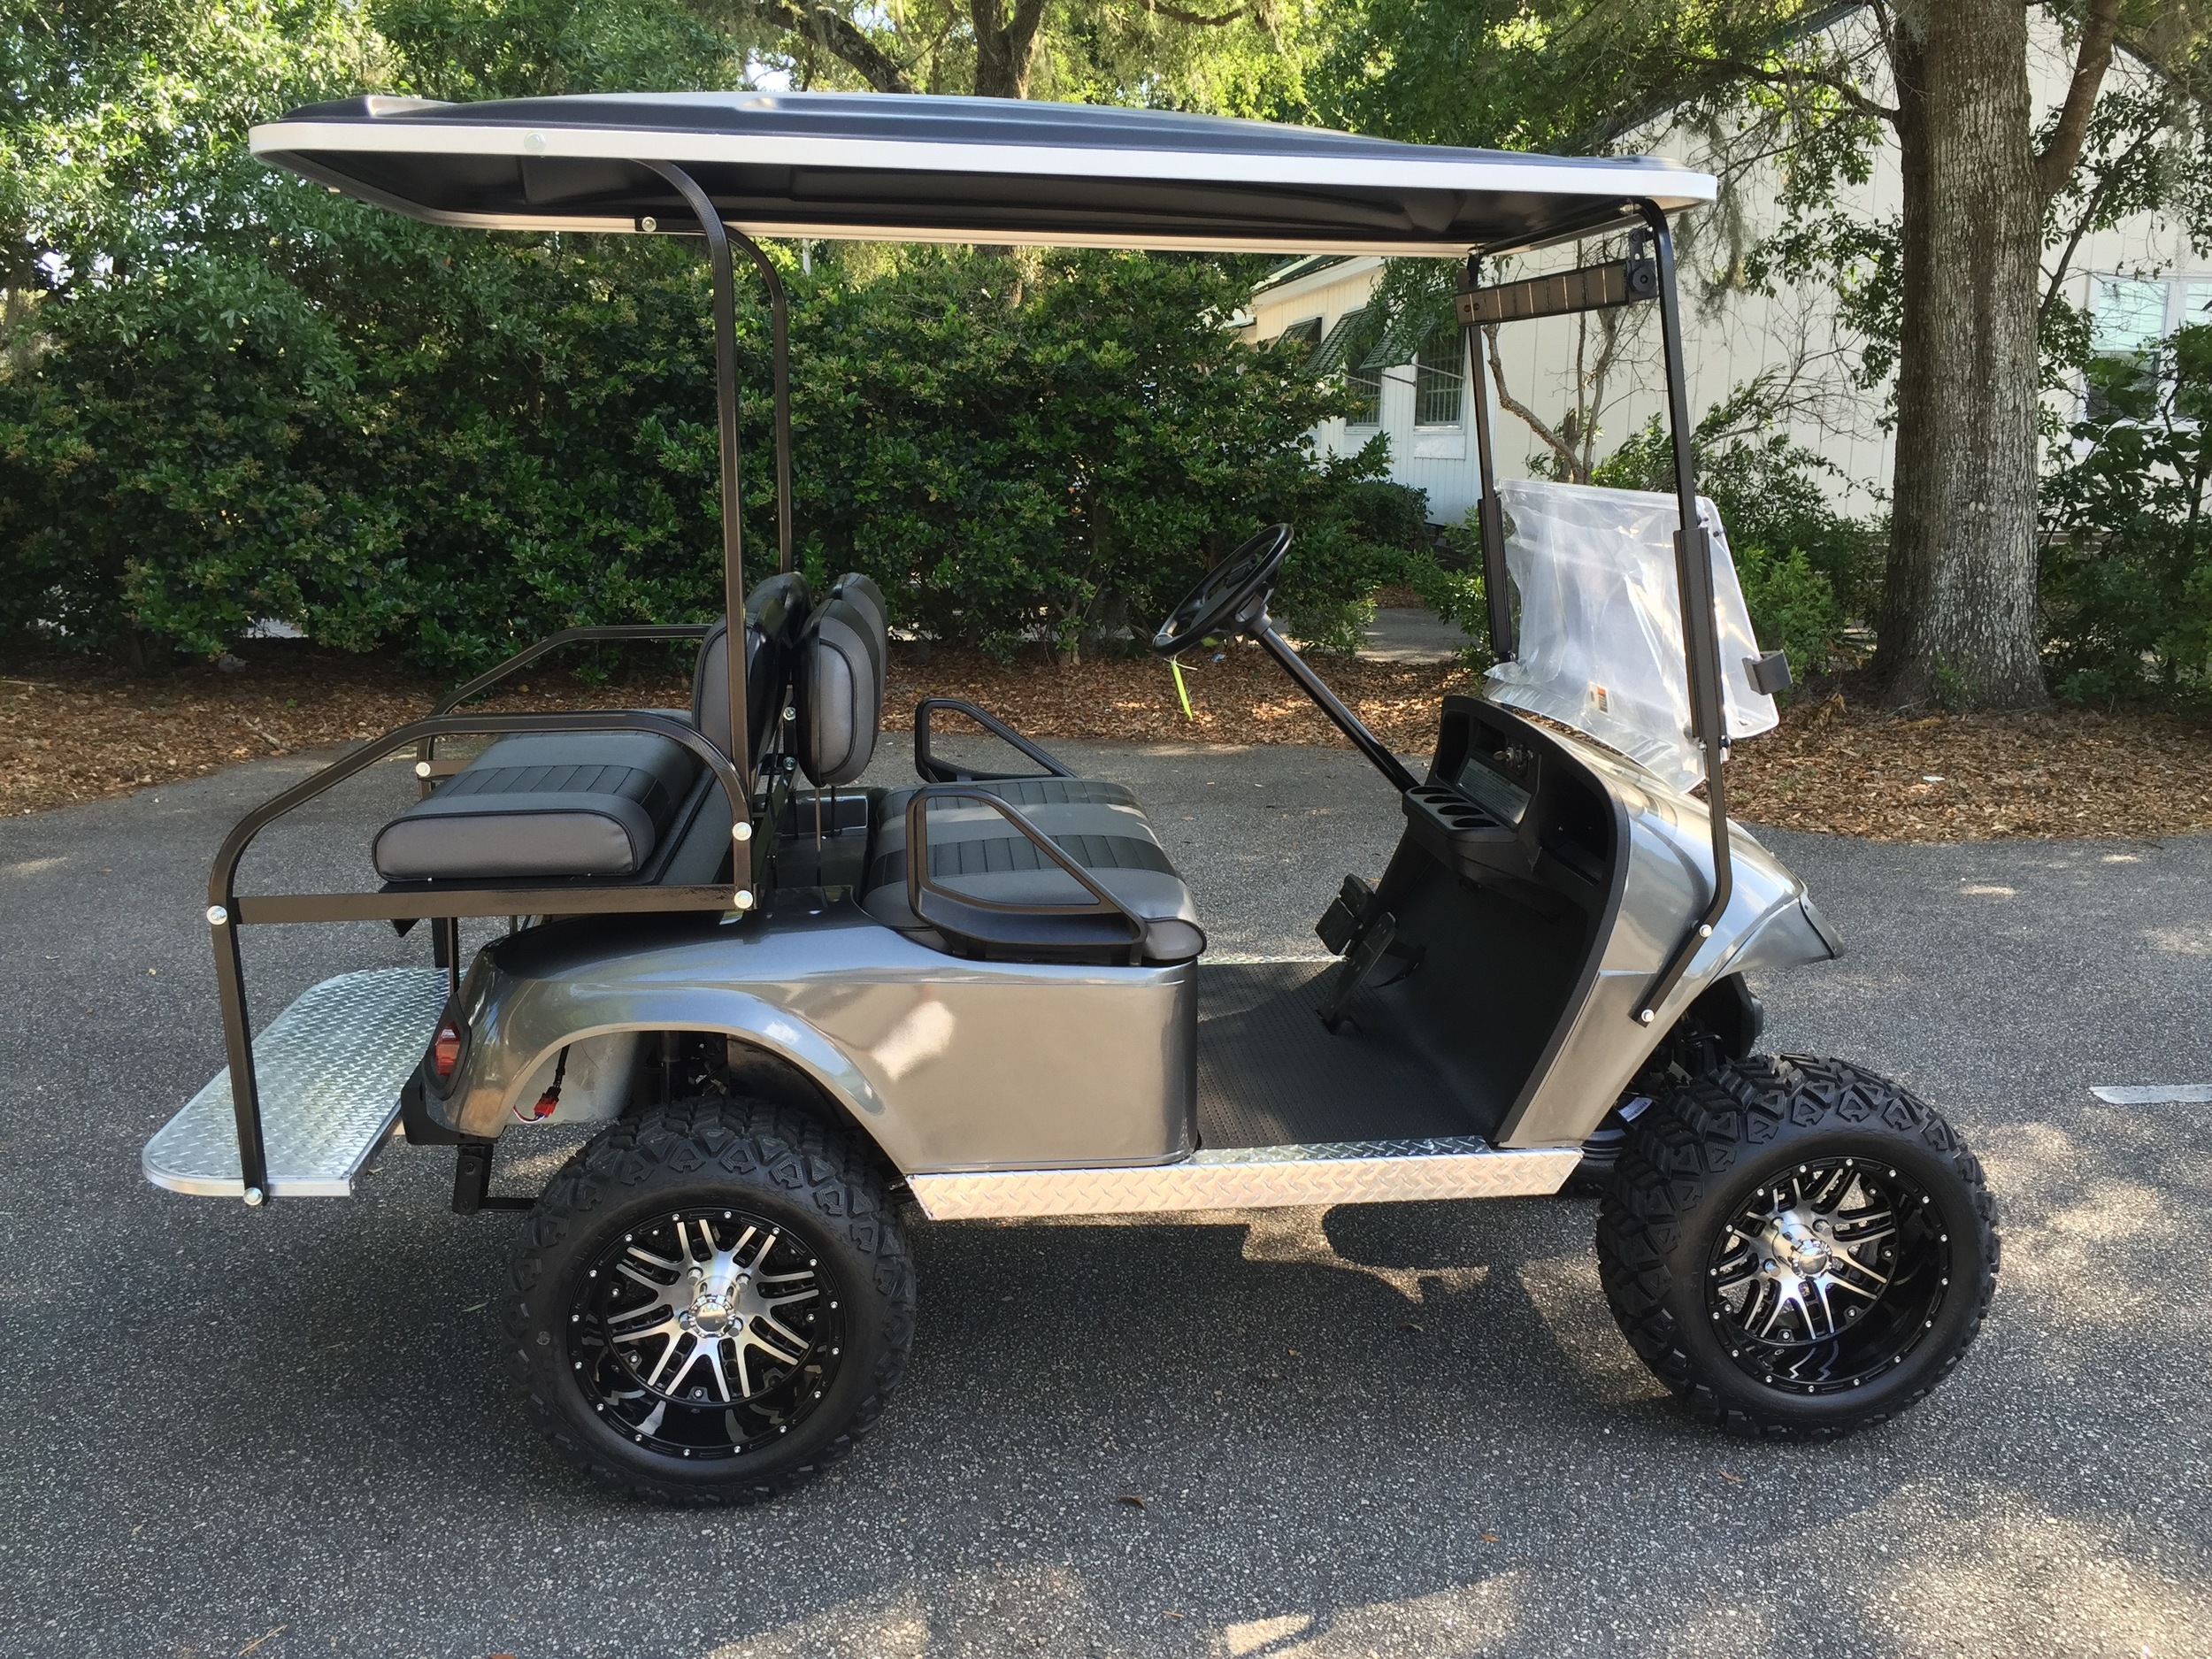 2015 Charcoal EZGO Lifted Cart ——- In Stock  Charcoal/black seats, black extended top, new 2019 batteries 48vt (6-8), LED lights, Backlash (23x10x14) tires, mirror & flip windshield